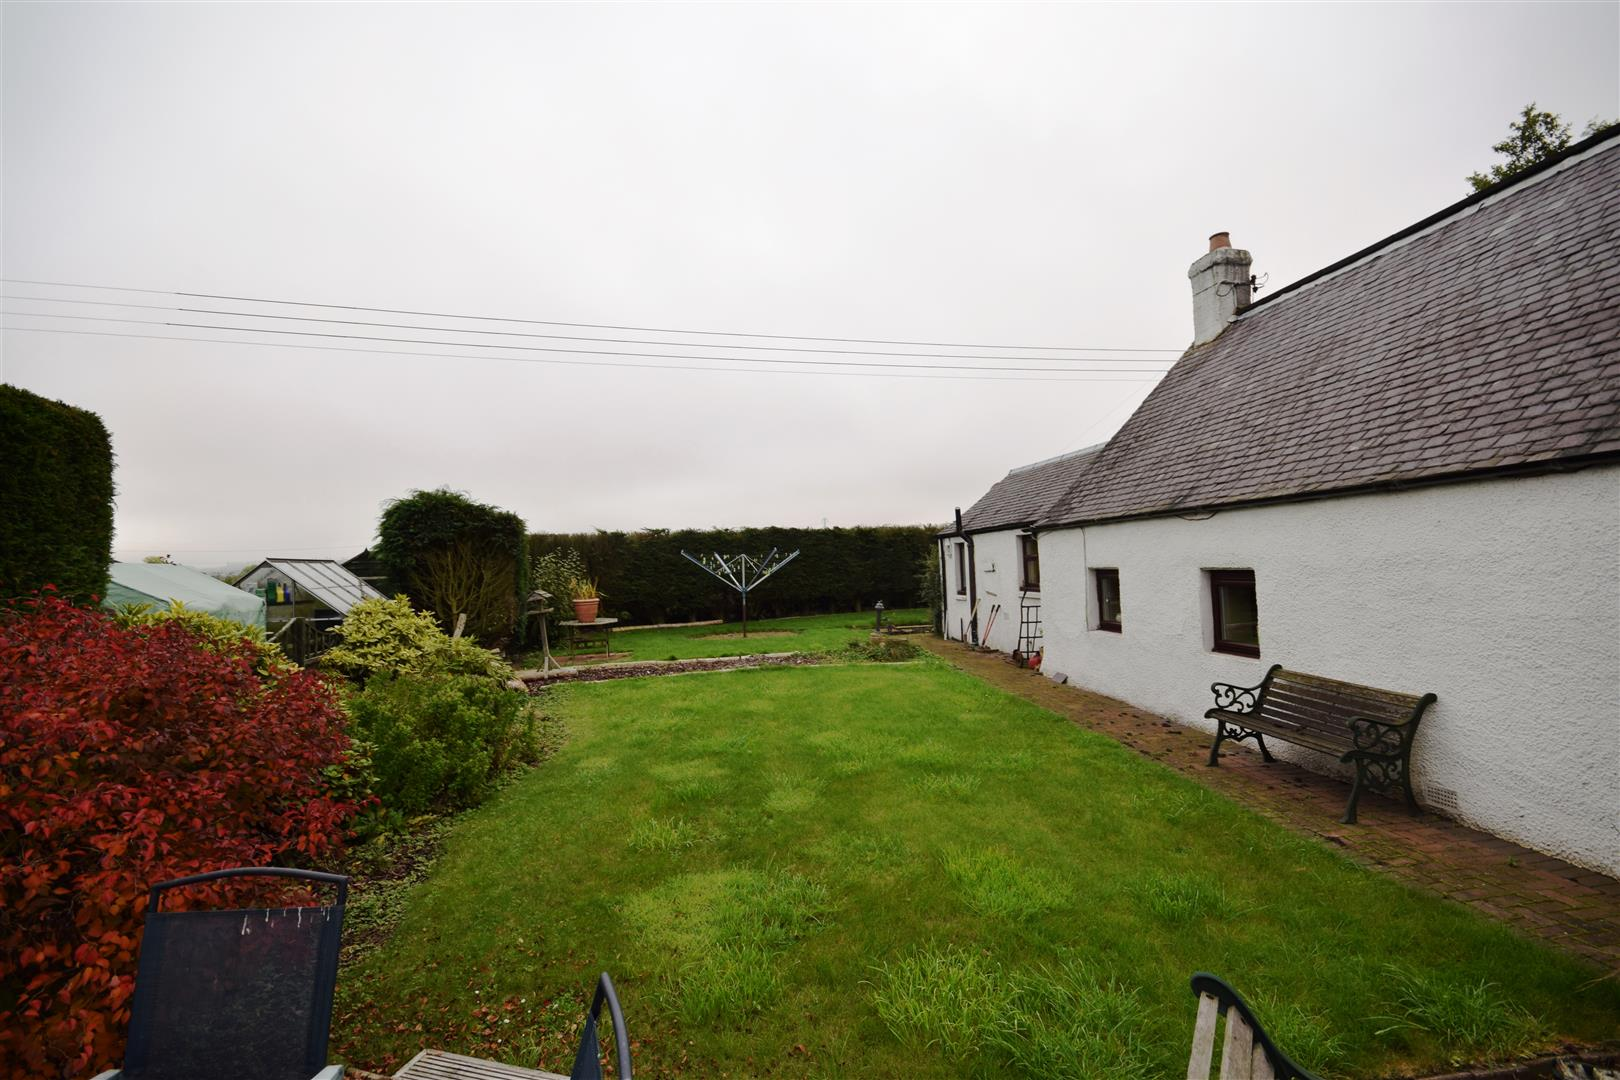 Rhettland Cottage, North Murie, Errol, Perthshire, PH2 7RL, UK